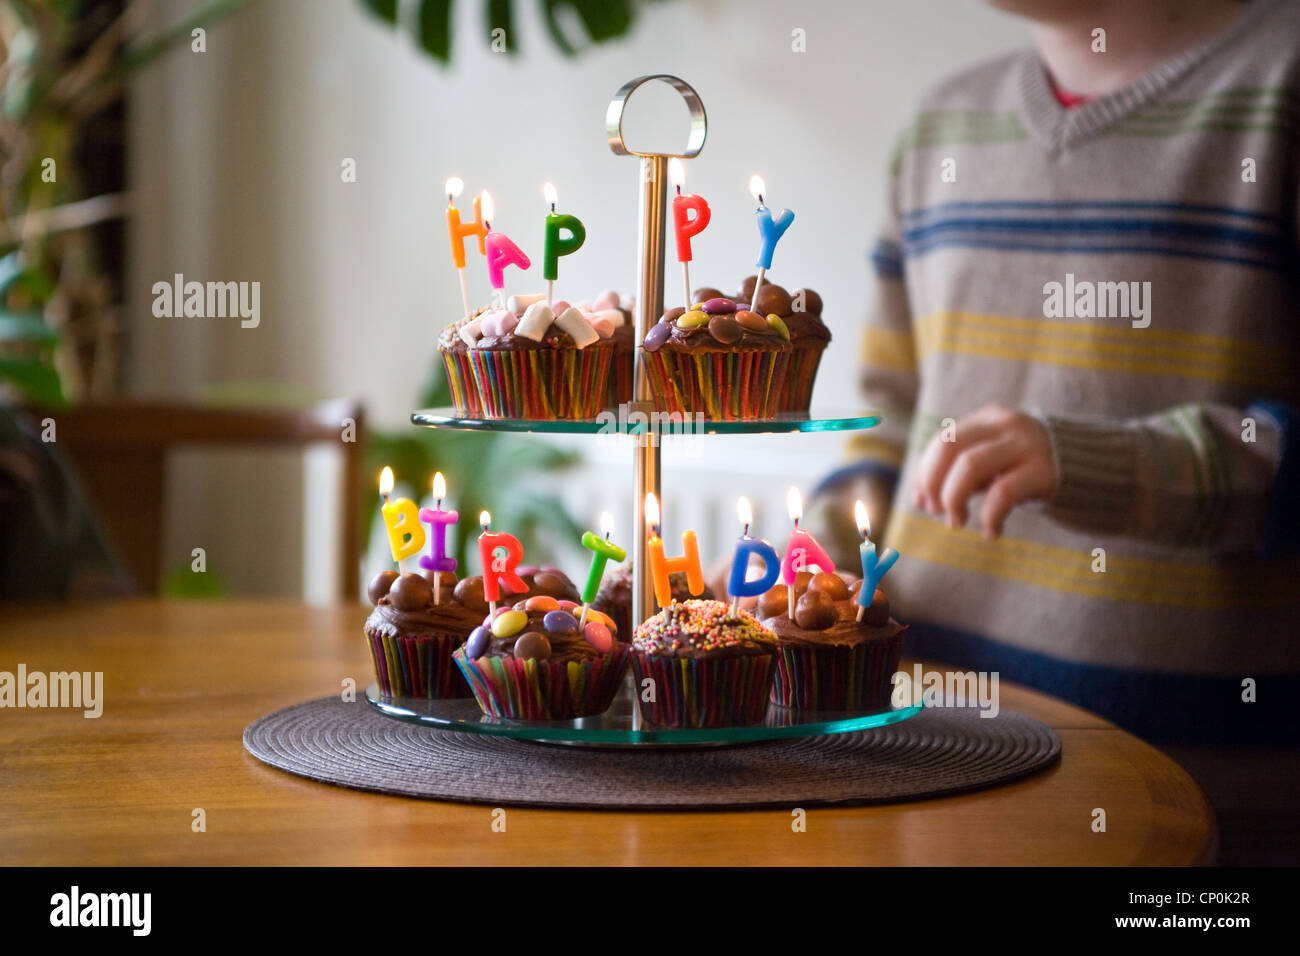 Happy Birthday Cakes Cup Cake Candles Party Dessert